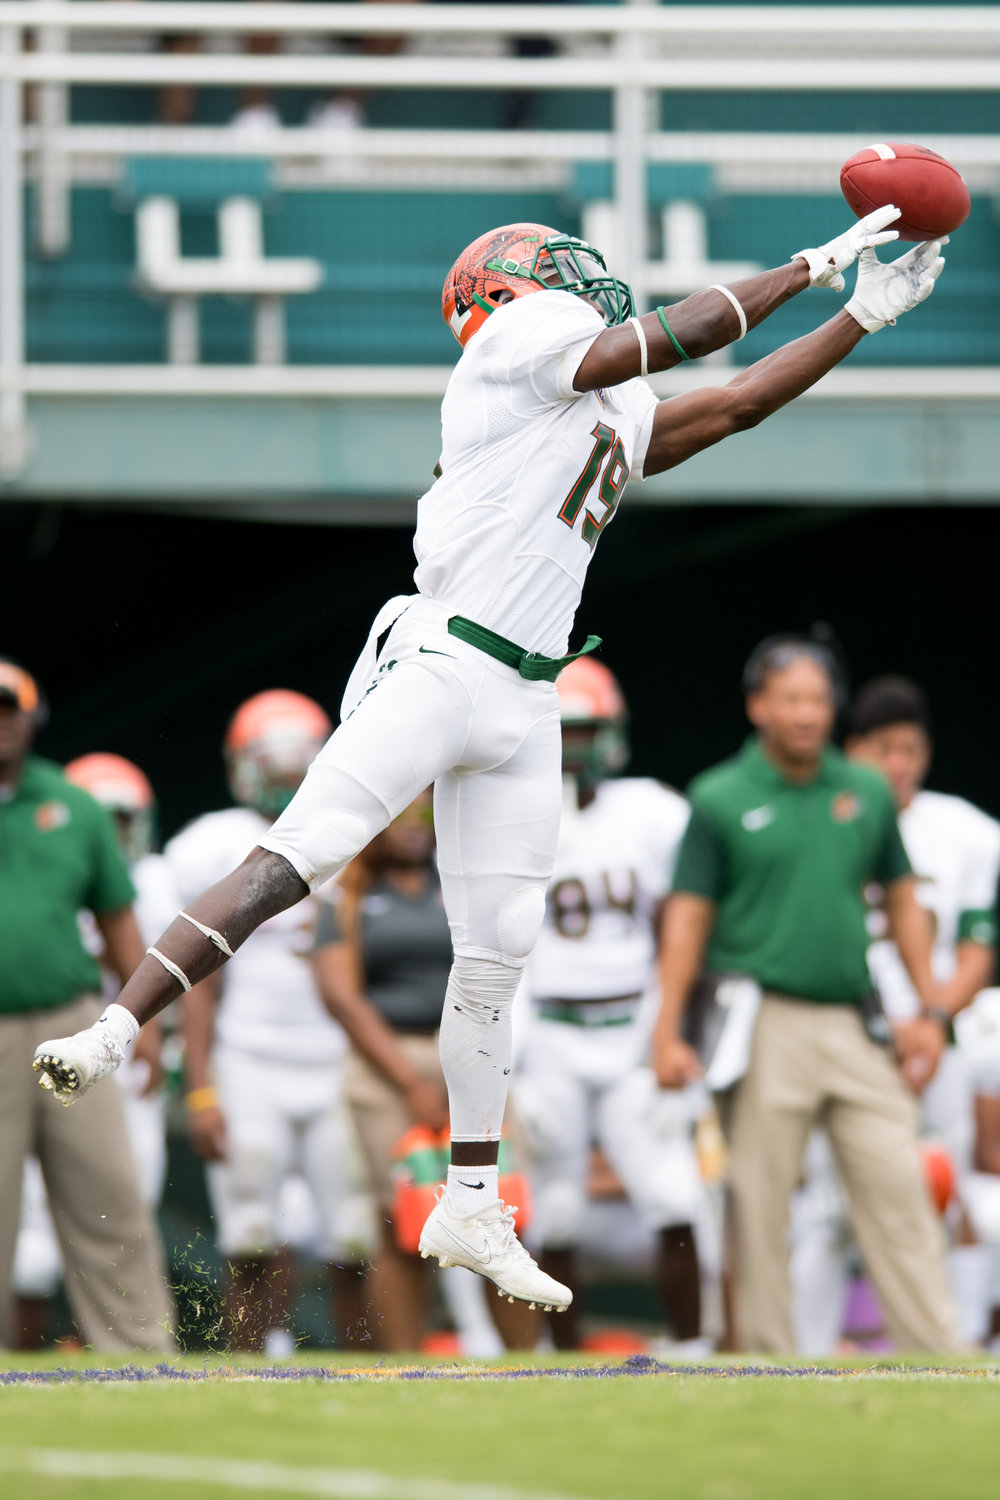 Florida A&M Rattlers wide receiver Kareem Smith (19) leaps for the ball for an incomplete pass during the Saturday, October 7th 2017 game against the Norfolk State Spartans held at Dick Price Stadium in Norfolk, Virginia. Score is tied 14-14 at the half.